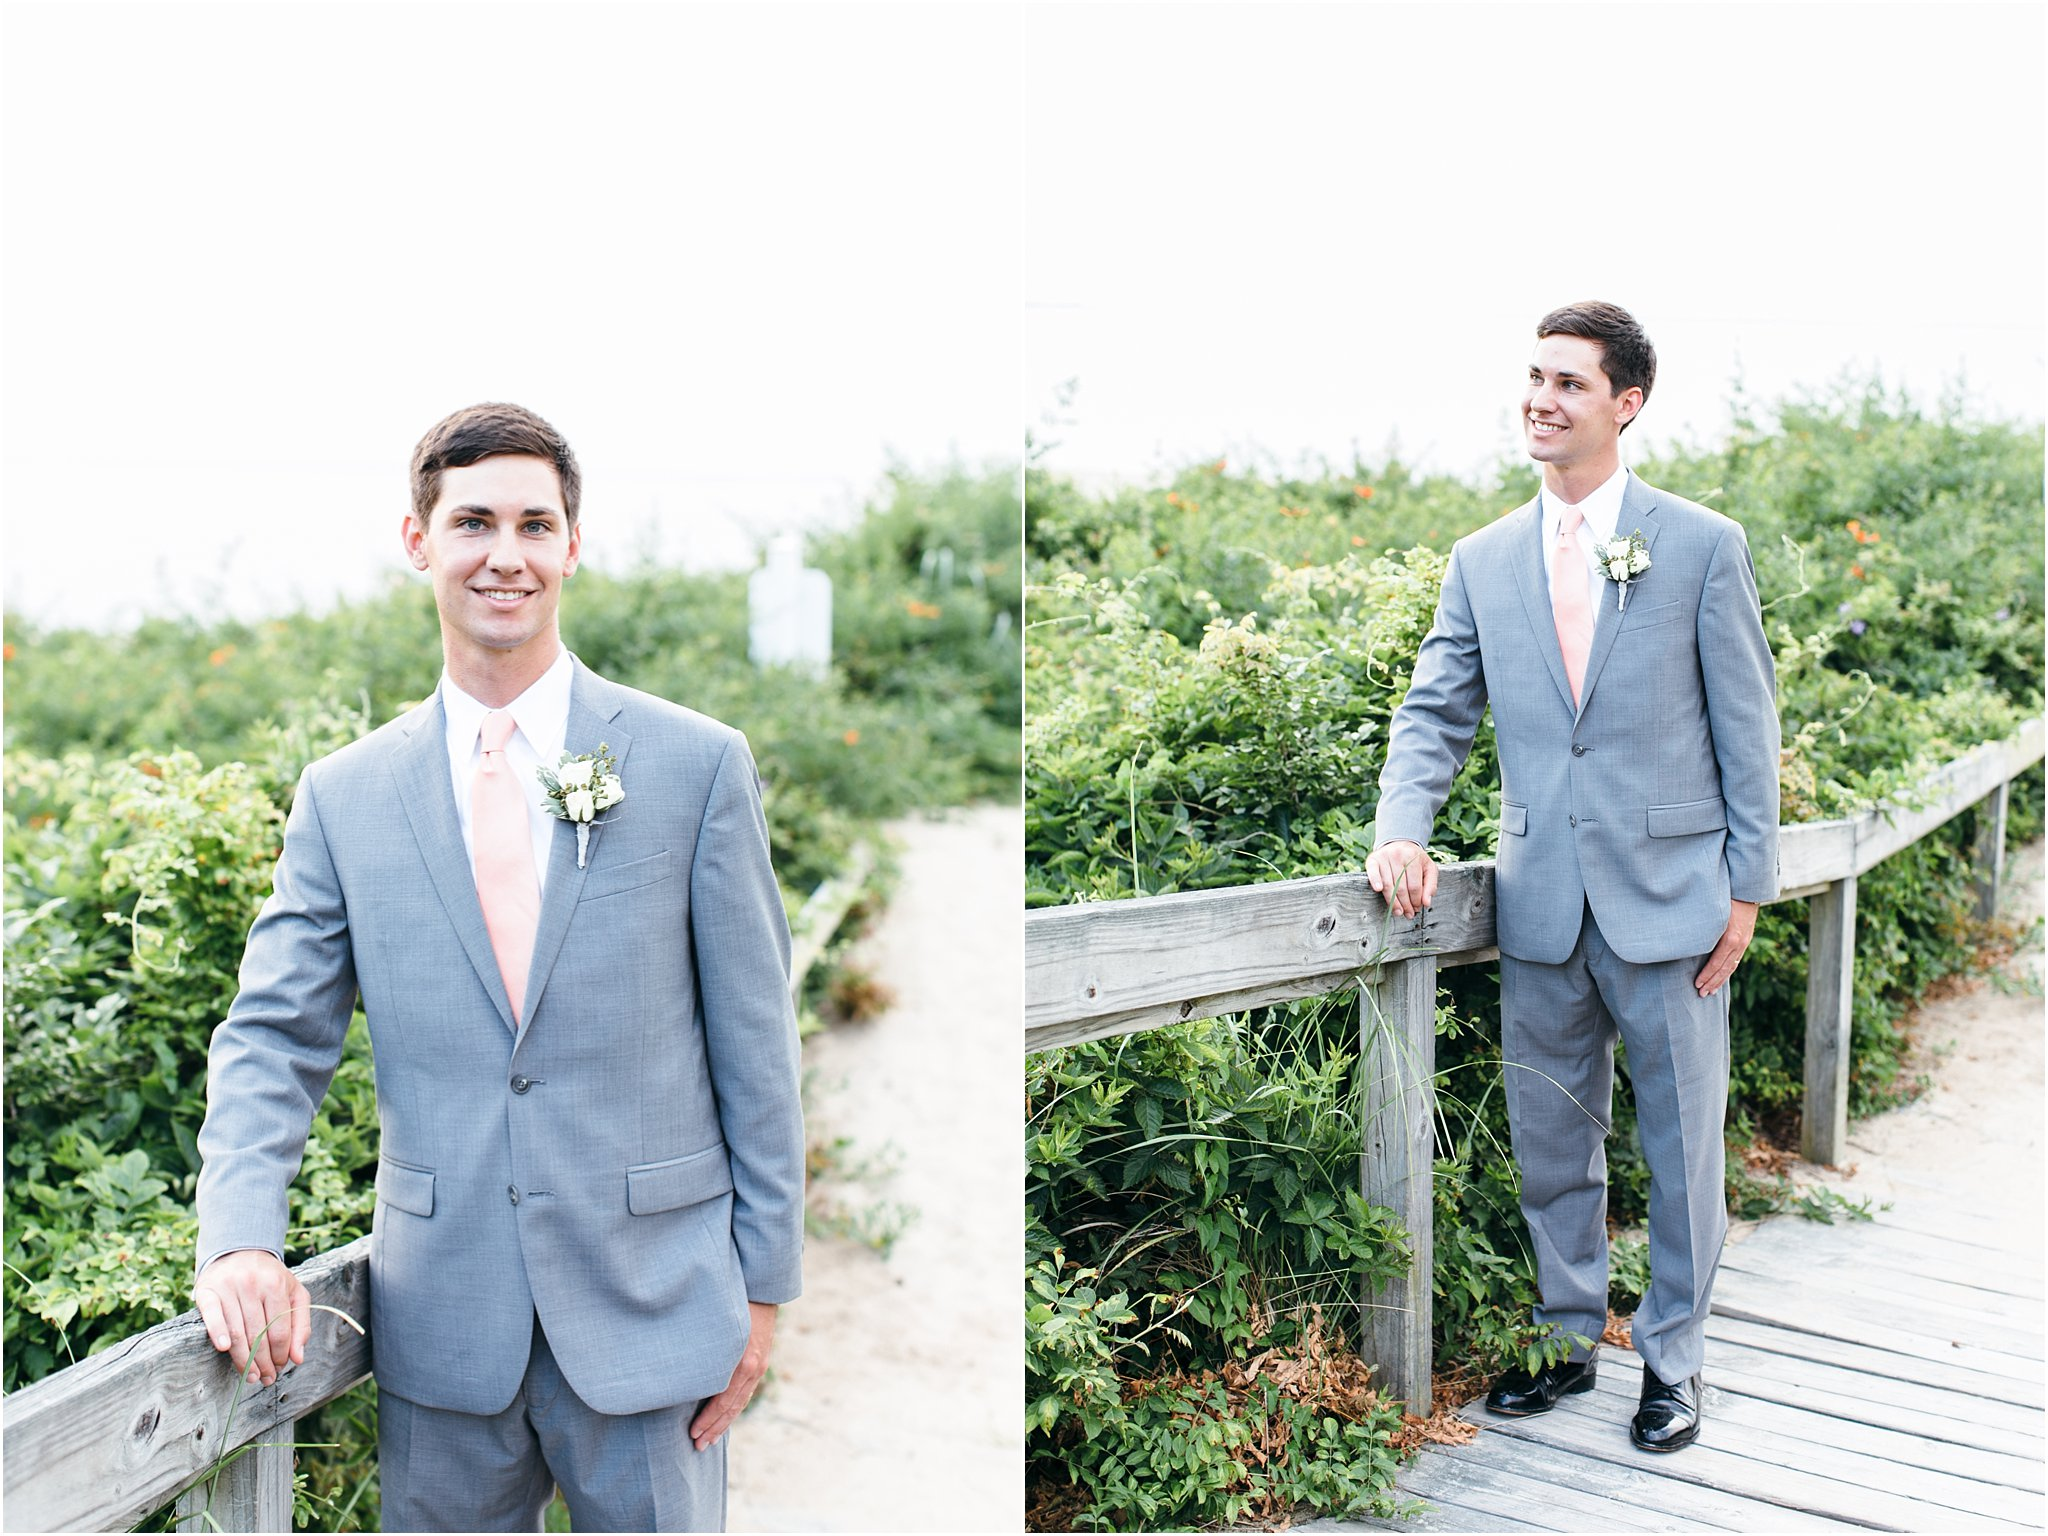 jessica_ryan_photography_wedding_photography_virginiabeach_virginia_candid_authentic_wedding_portraits_marina_shores_yacht_club_chesapeake_bay_1896